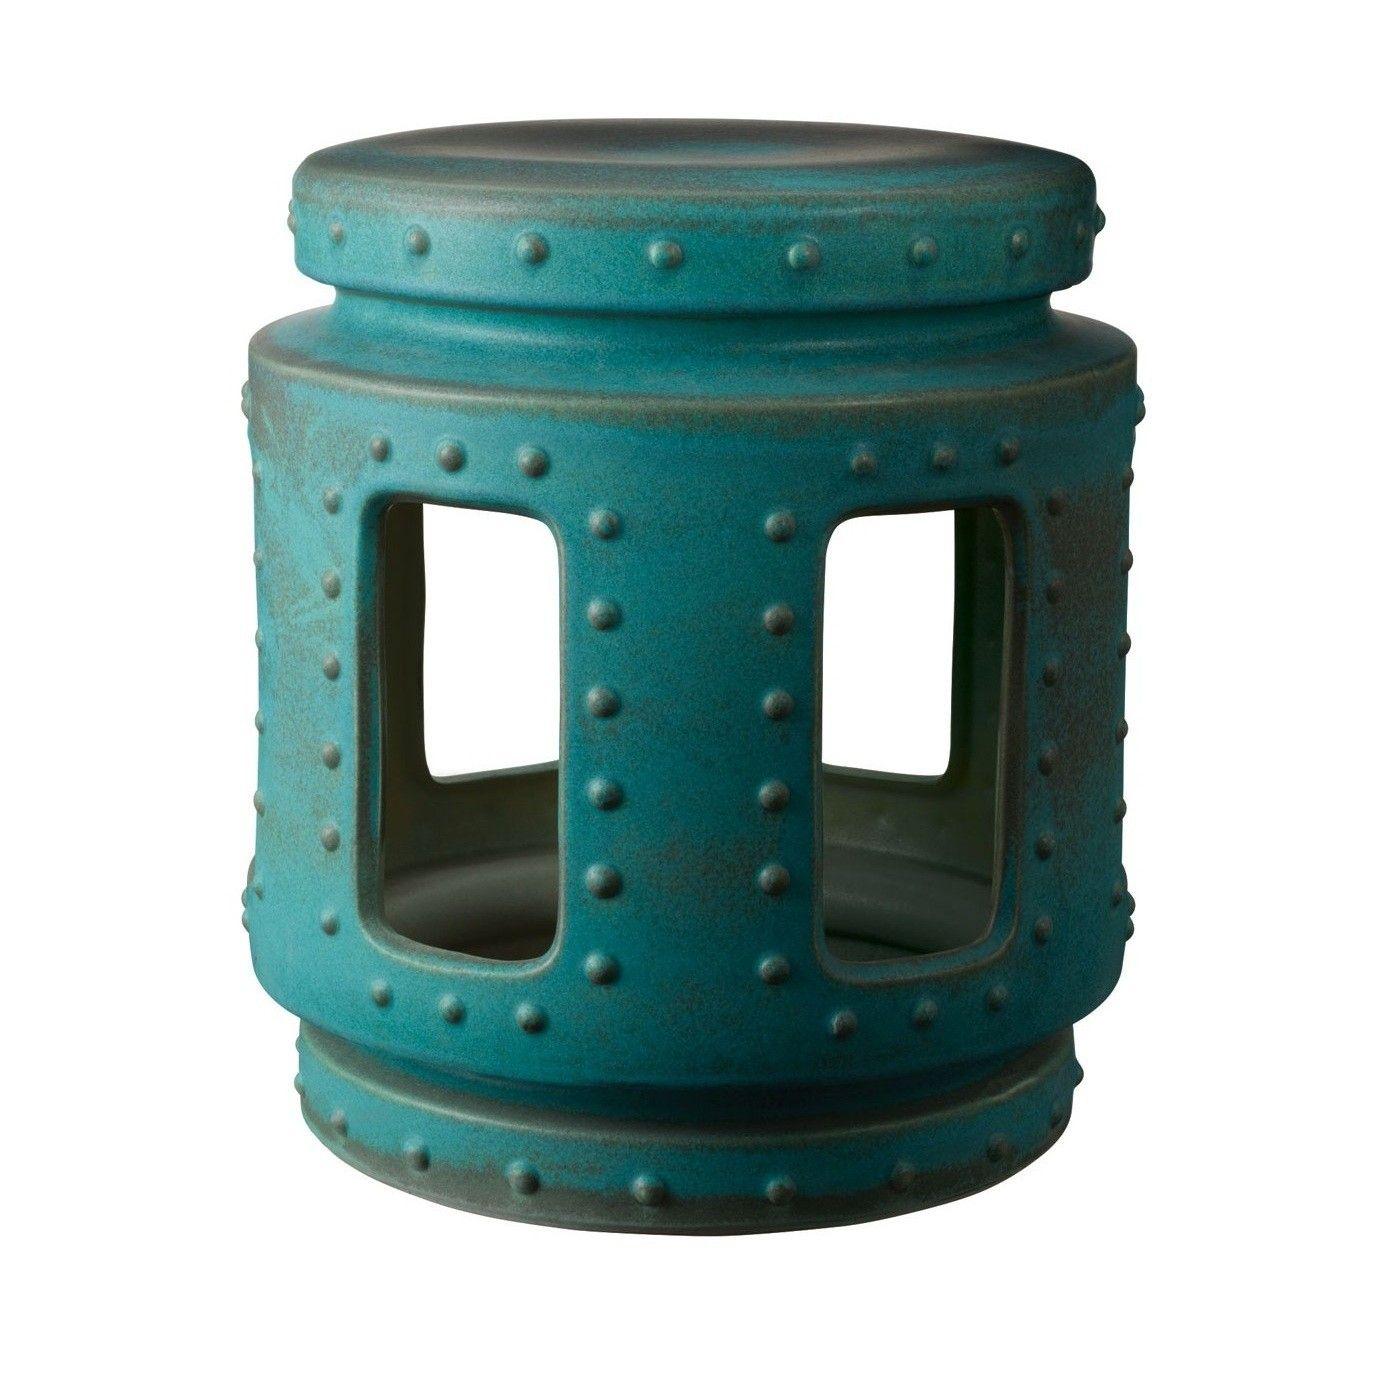 Made of earthenware Hand applied finish Handcrafted Indoor use only *Also available in Black Acid